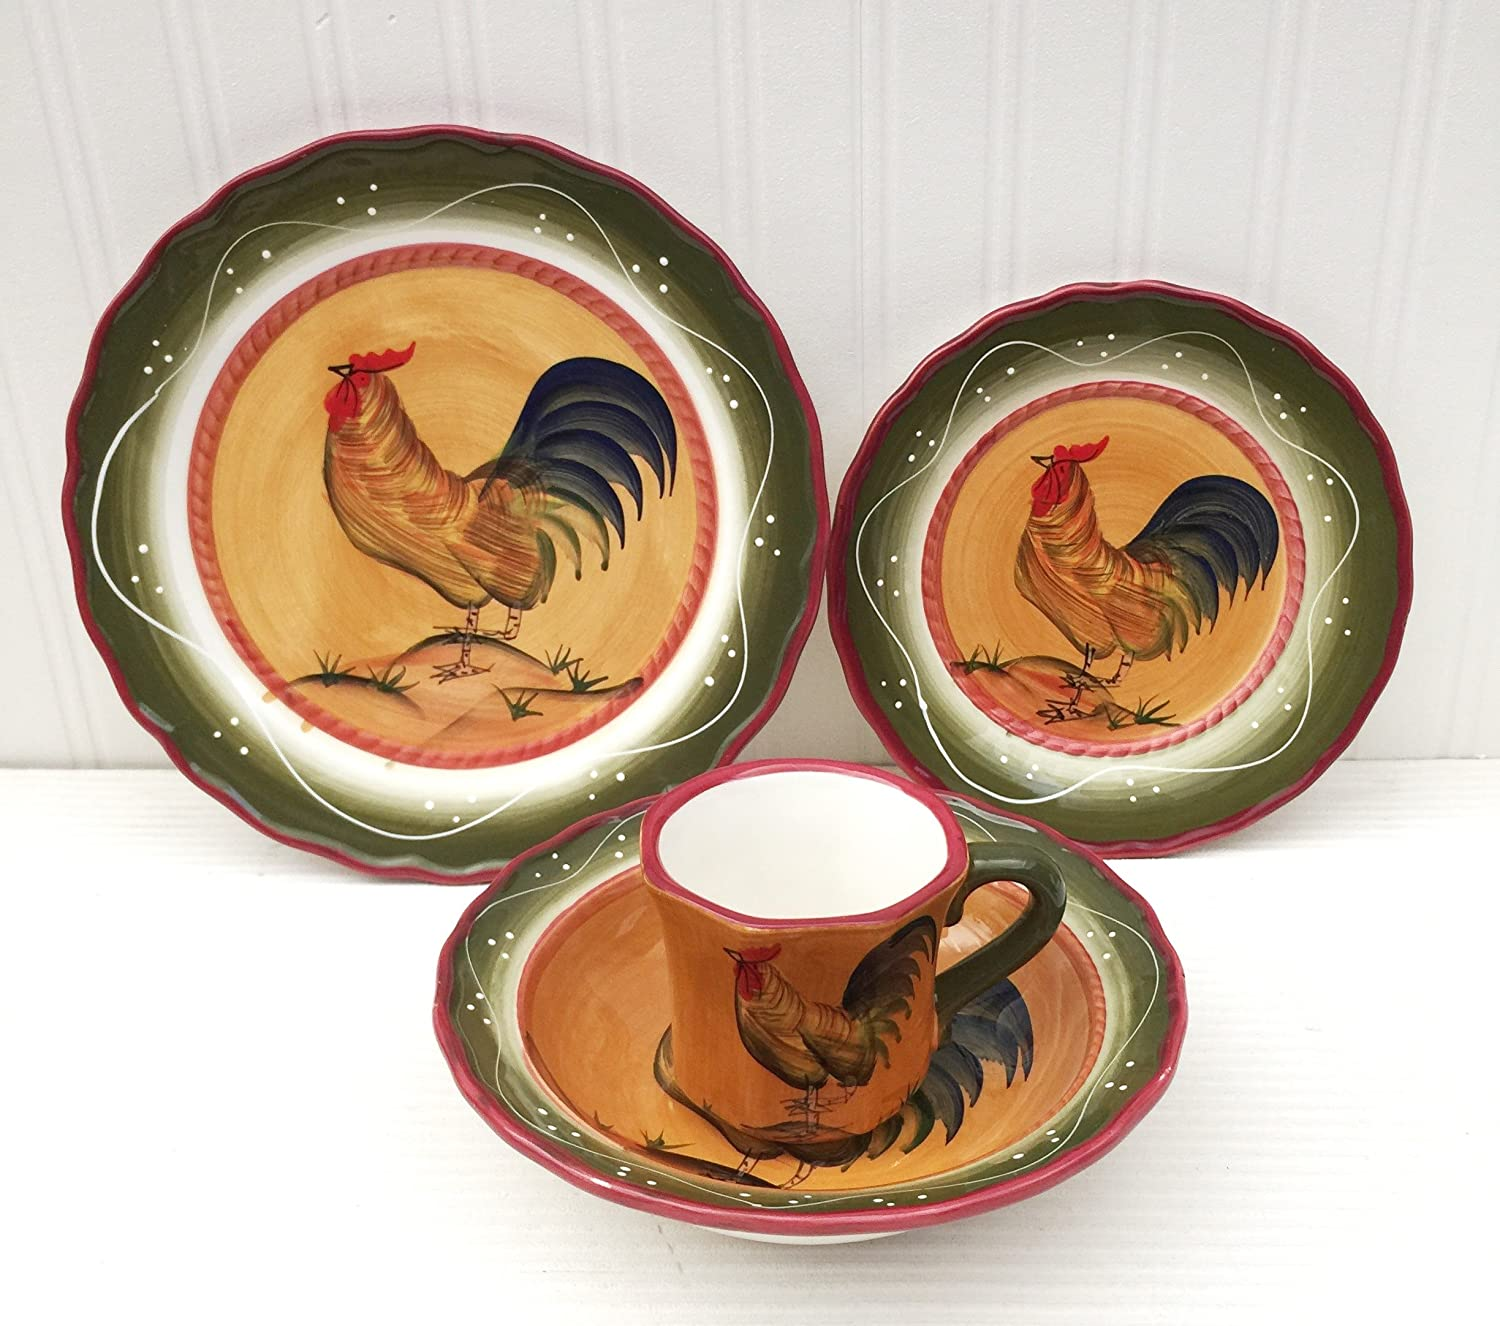 Amazon.com - Tuscan Sunshine Country Rooster Hand Painted collection ( DINNERWARE SET) - Kitchen Storage And Organization Product Sets  sc 1 st  Amazon.com & Amazon.com - Tuscan Sunshine Country Rooster Hand Painted collection ...